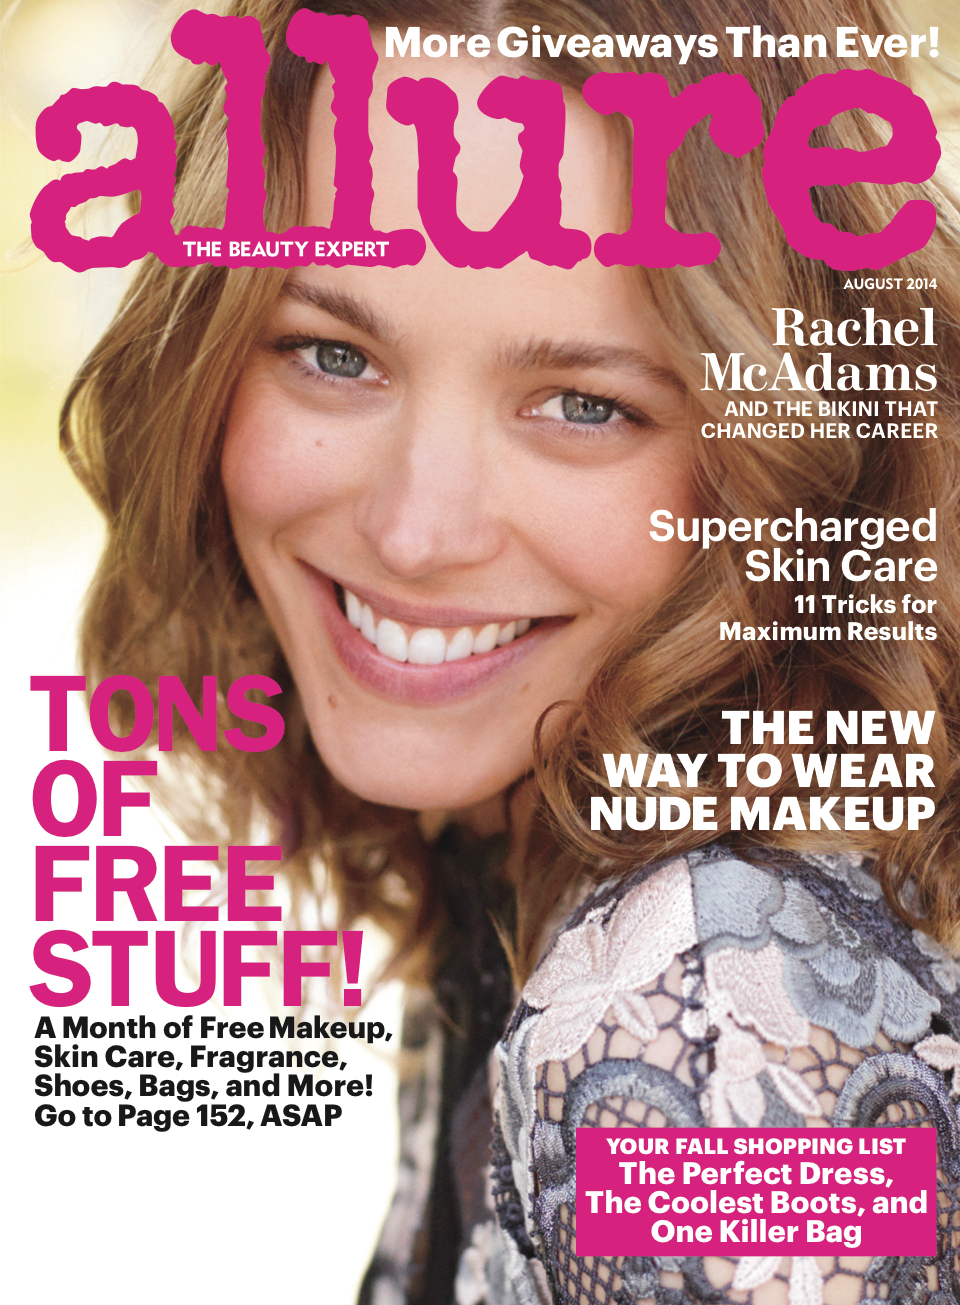 Rachel McAdams is bare-faced and beautiful on the cover of Allure